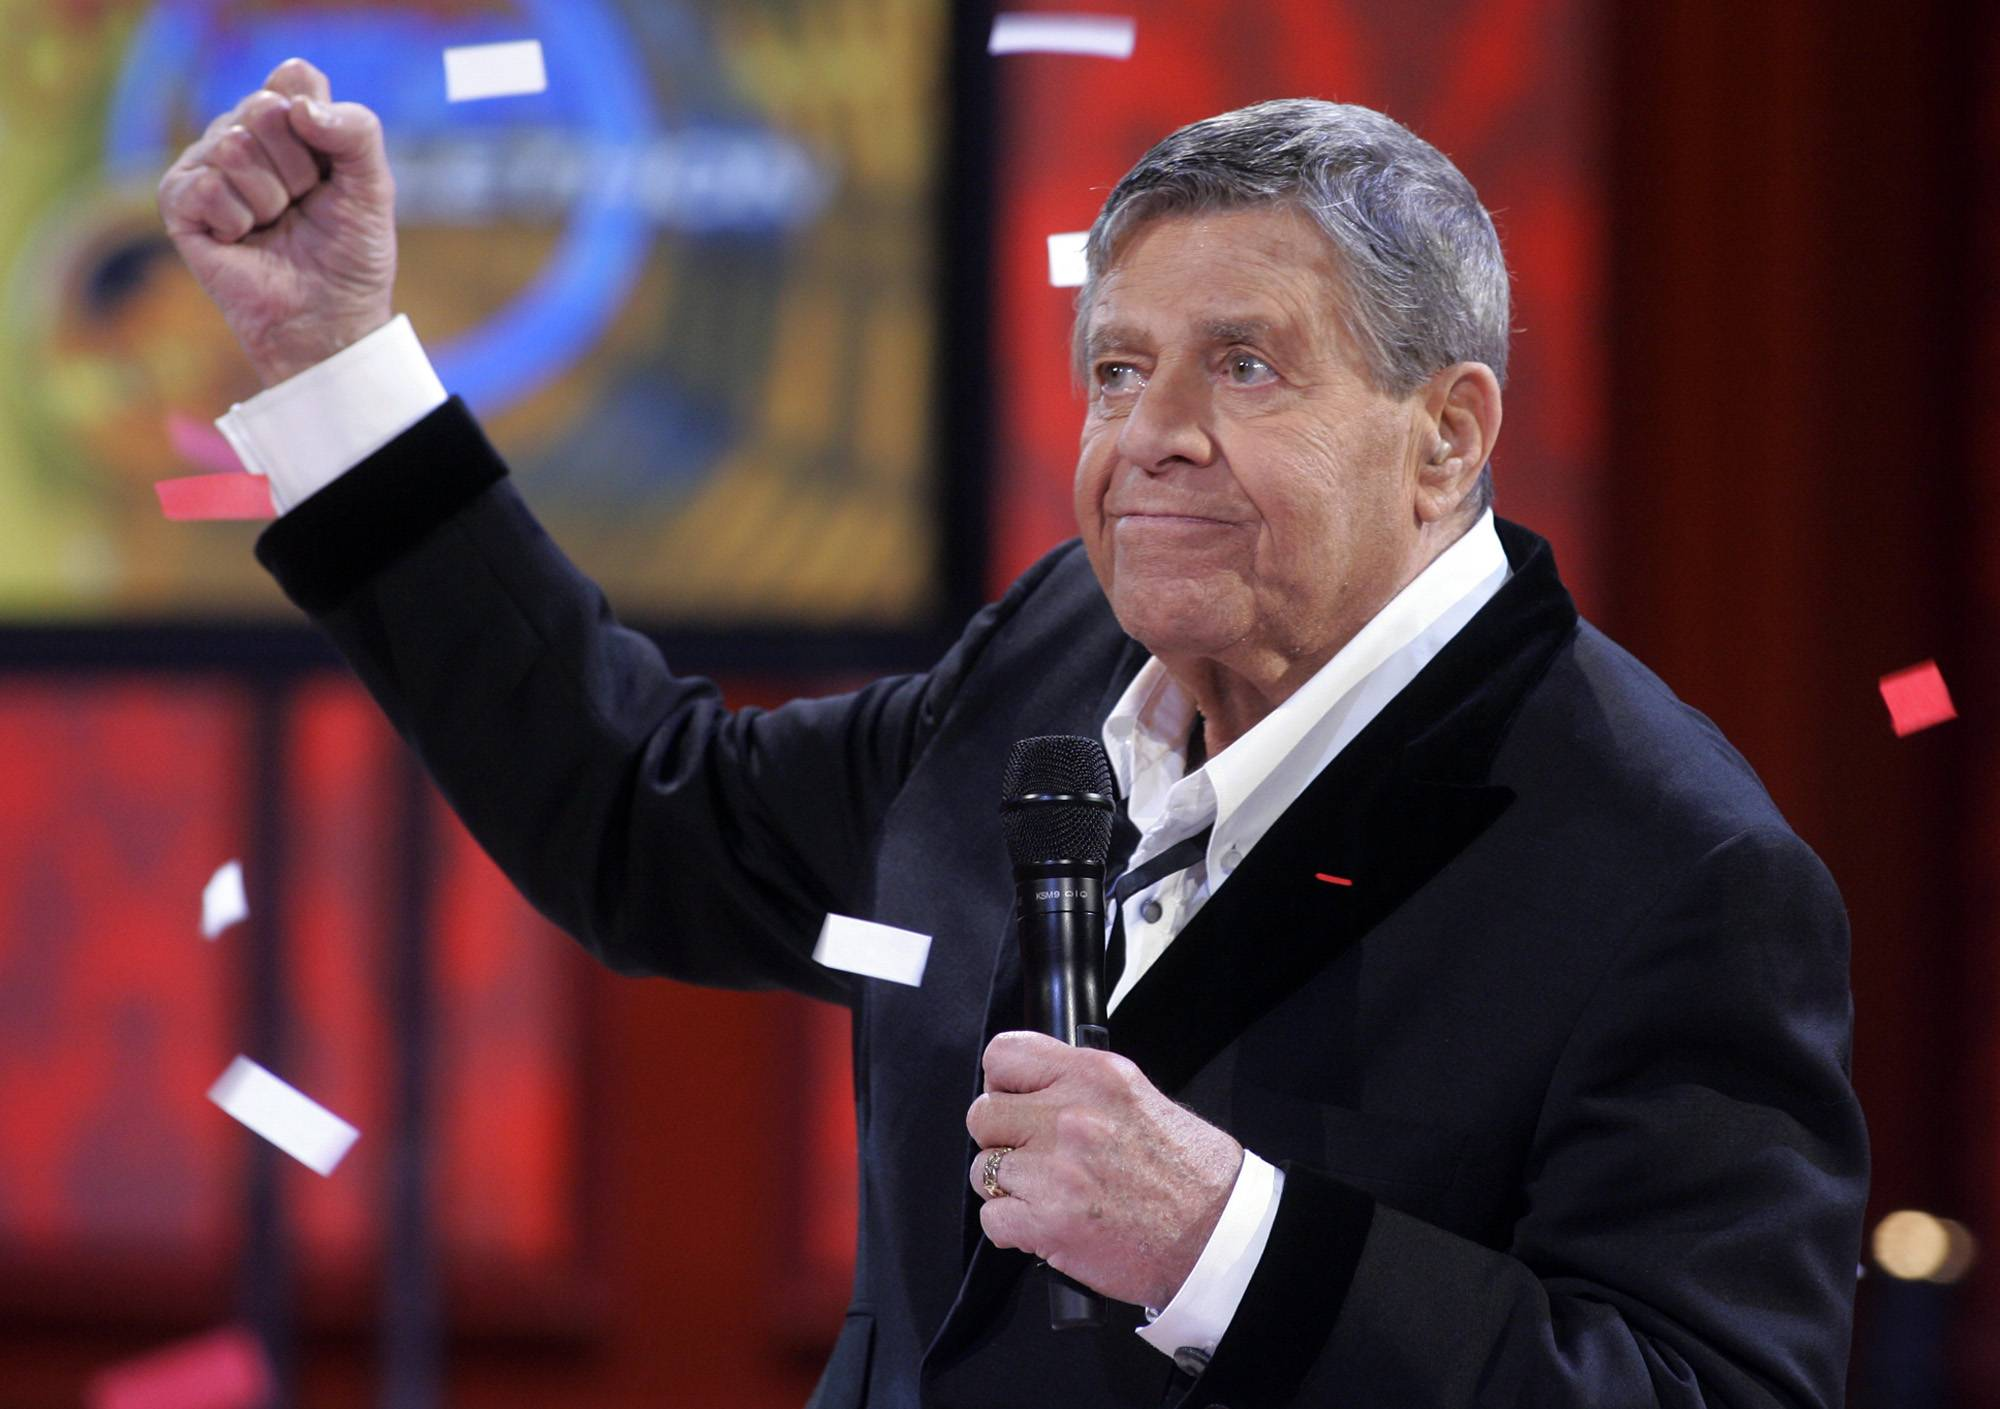 After 45 years Jerry Lewis 85 will no longer be appearing on the Muscular Dystrophy Association's Labor Day telethon.